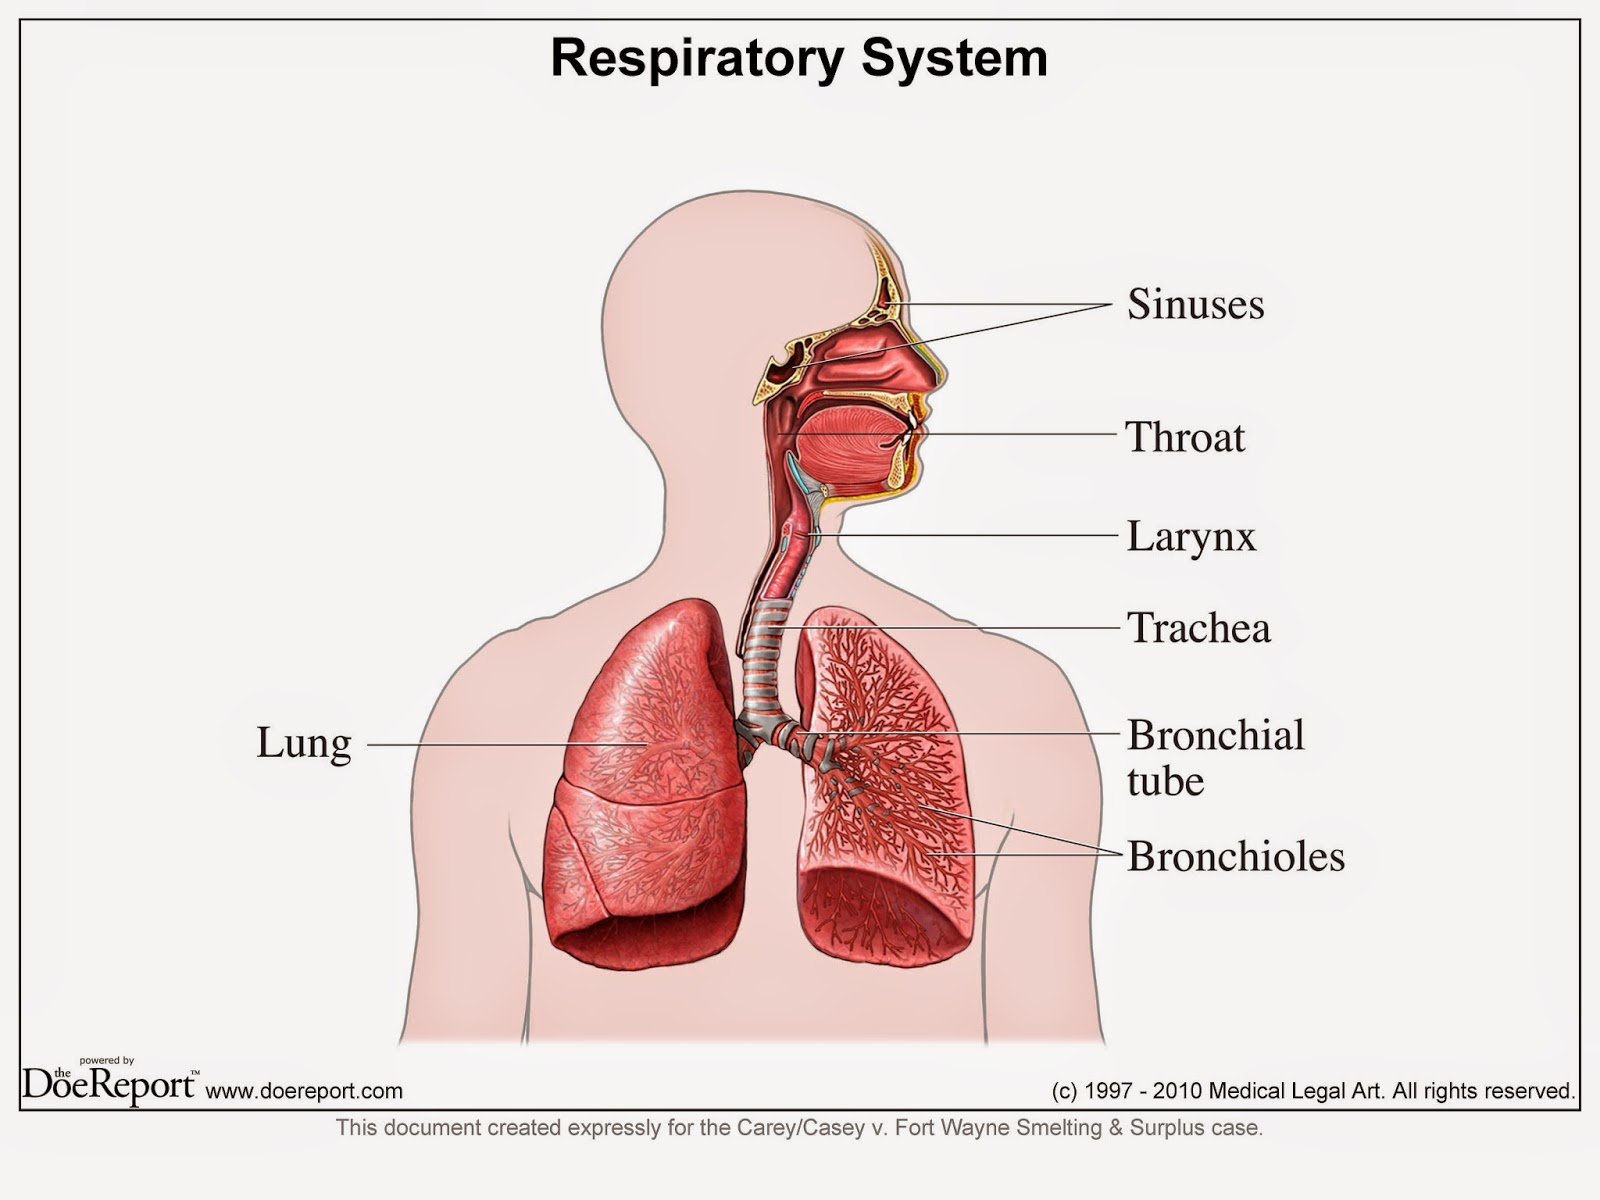 medium resolution of the organs include the sinuses throat larynx trachea bronchial tube lungs nose and bronchioles without these breathing would become extremely